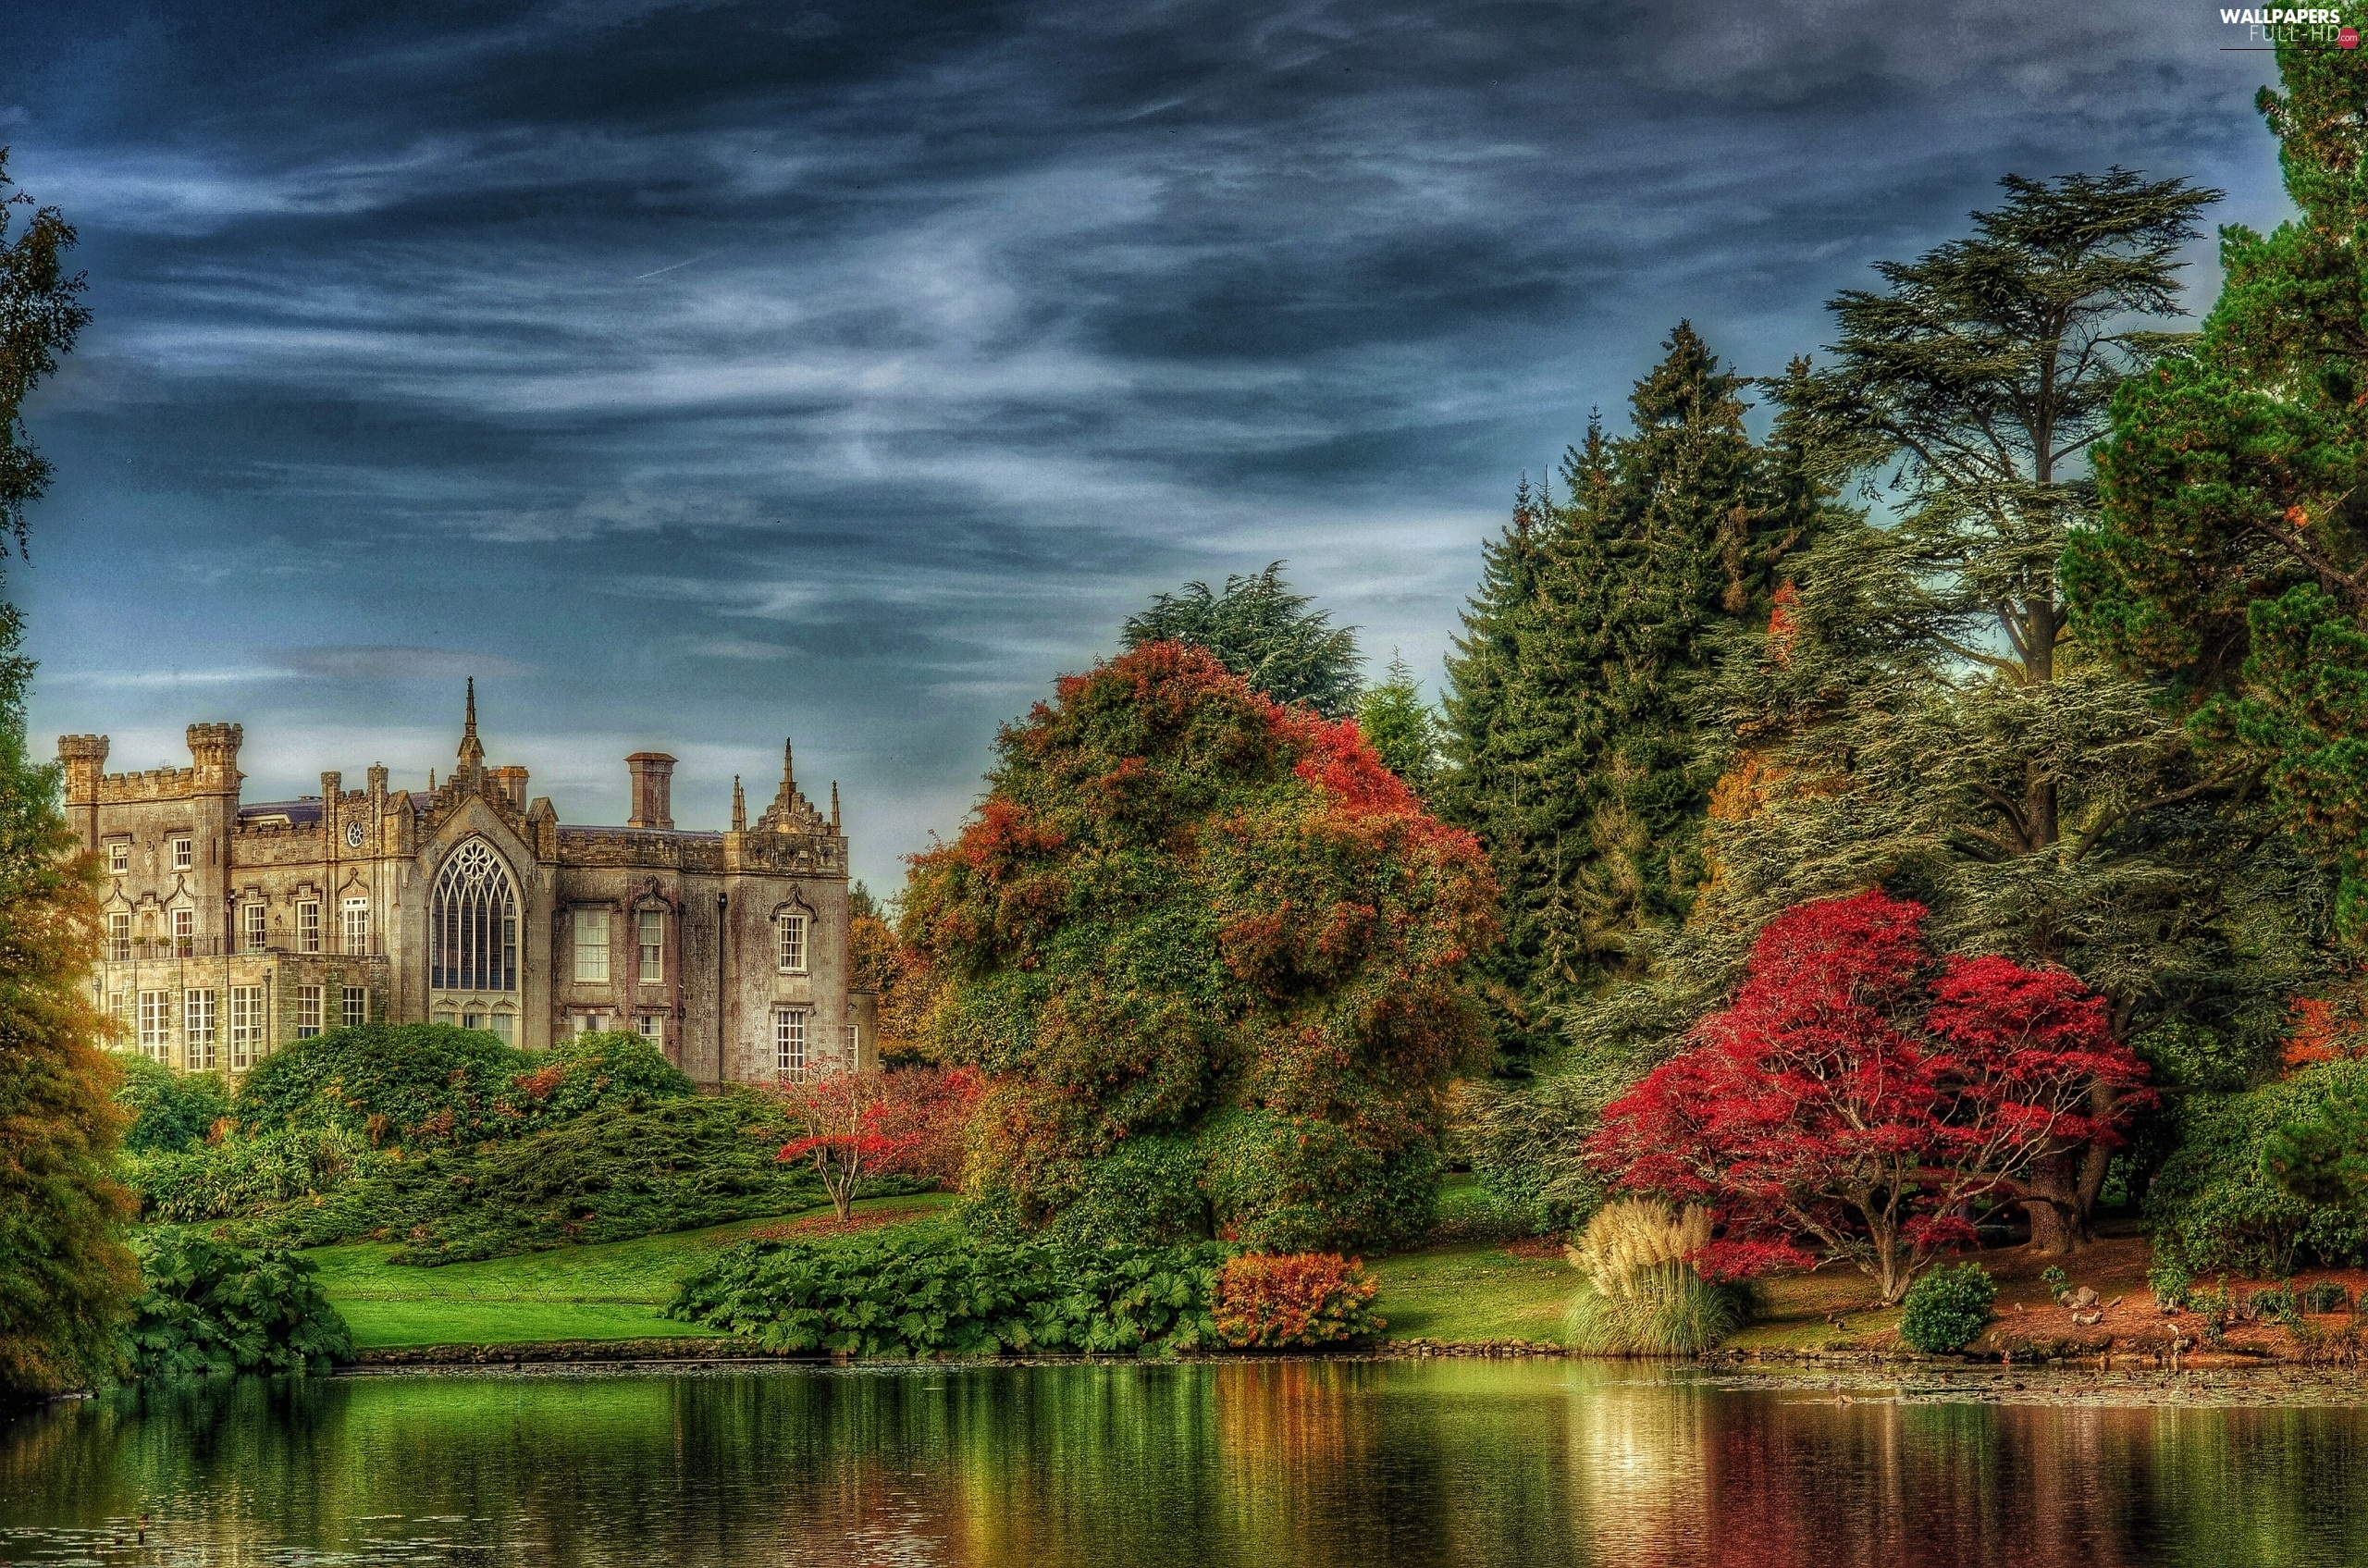 HDR, Great Britain, Sheffield Park